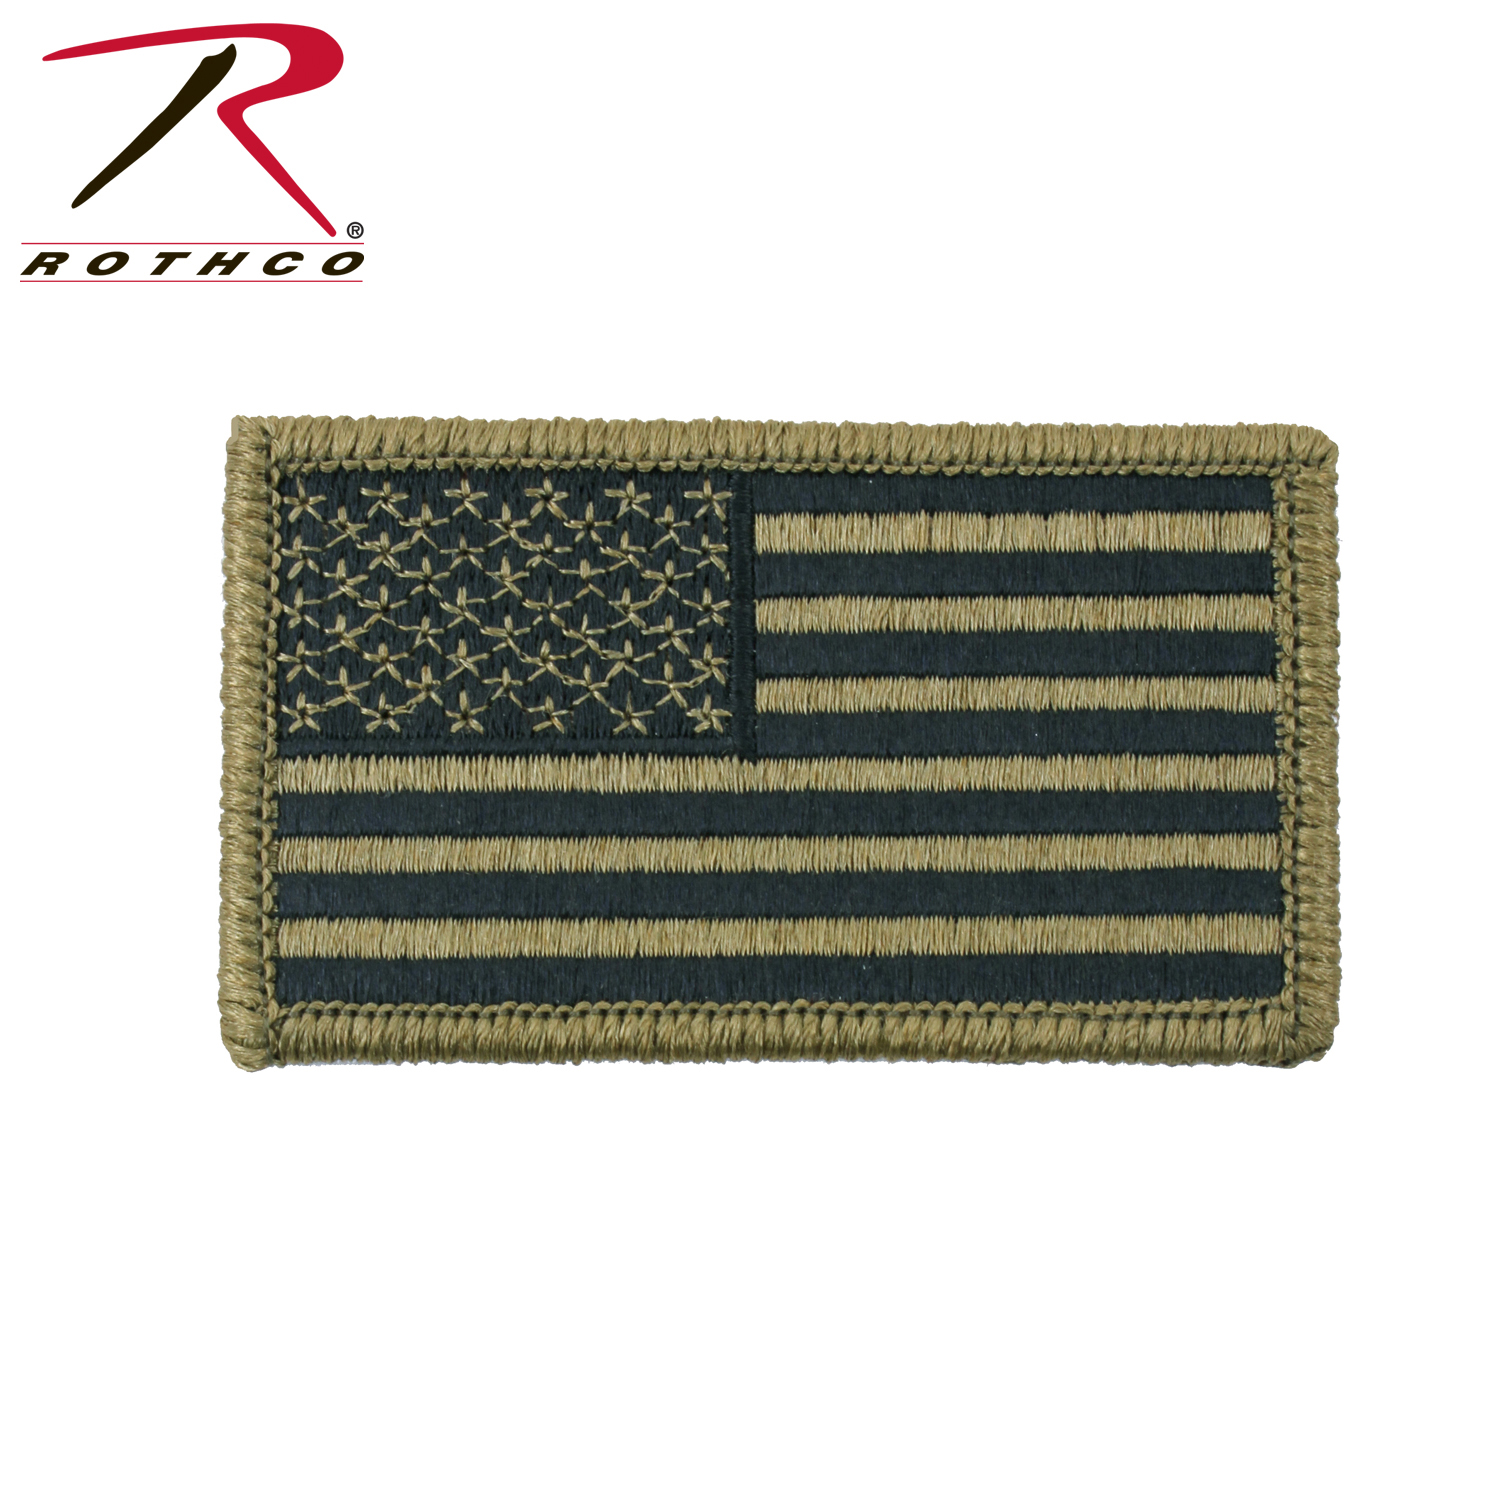 Rothco OCP American Flag Patch With Hook Back a8207b088a4